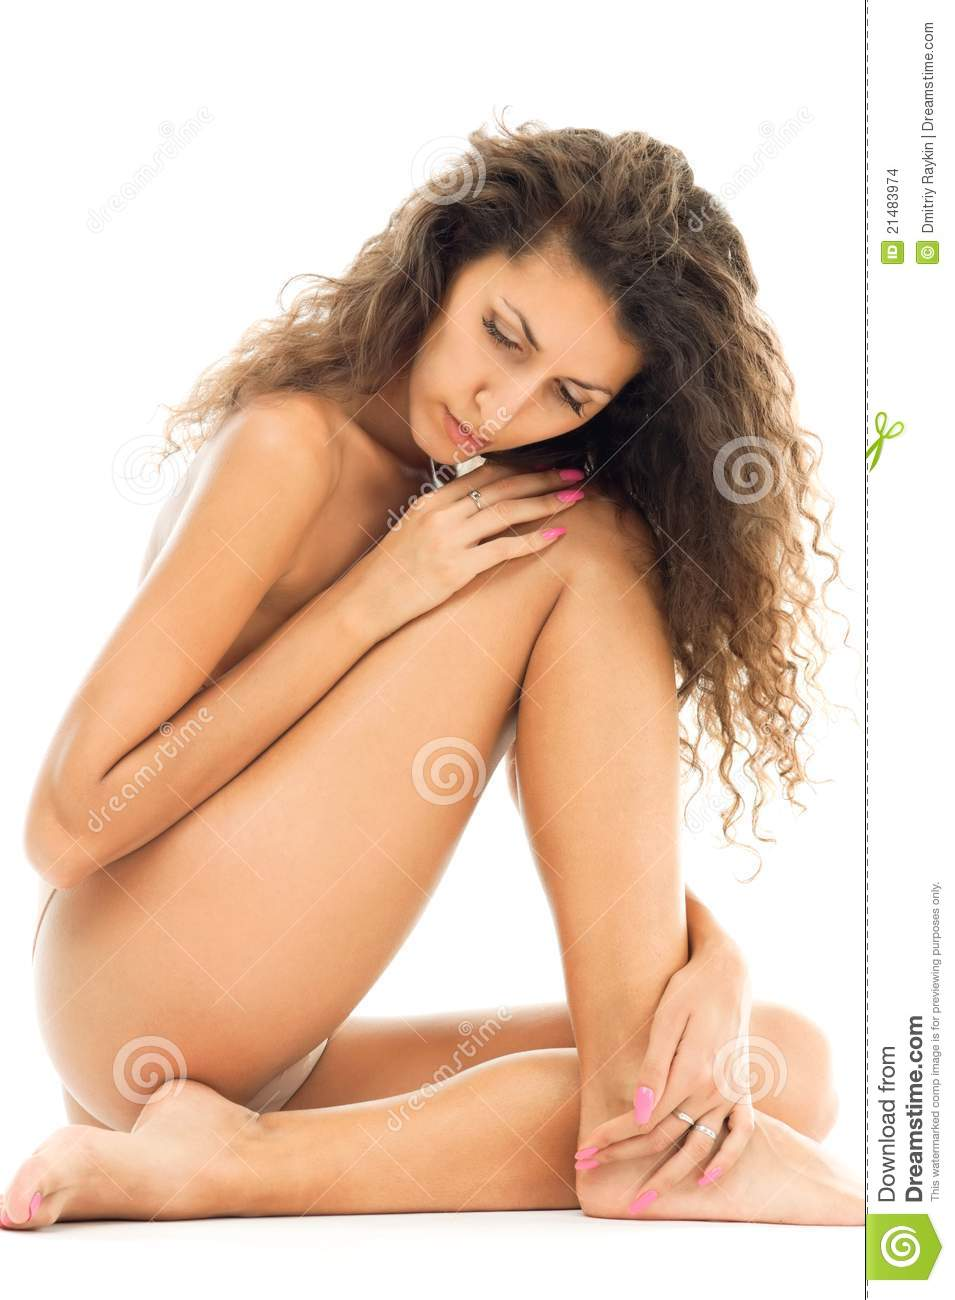 Beautiful Naked Woman In Sad Mood Stock Photo - Image -1475